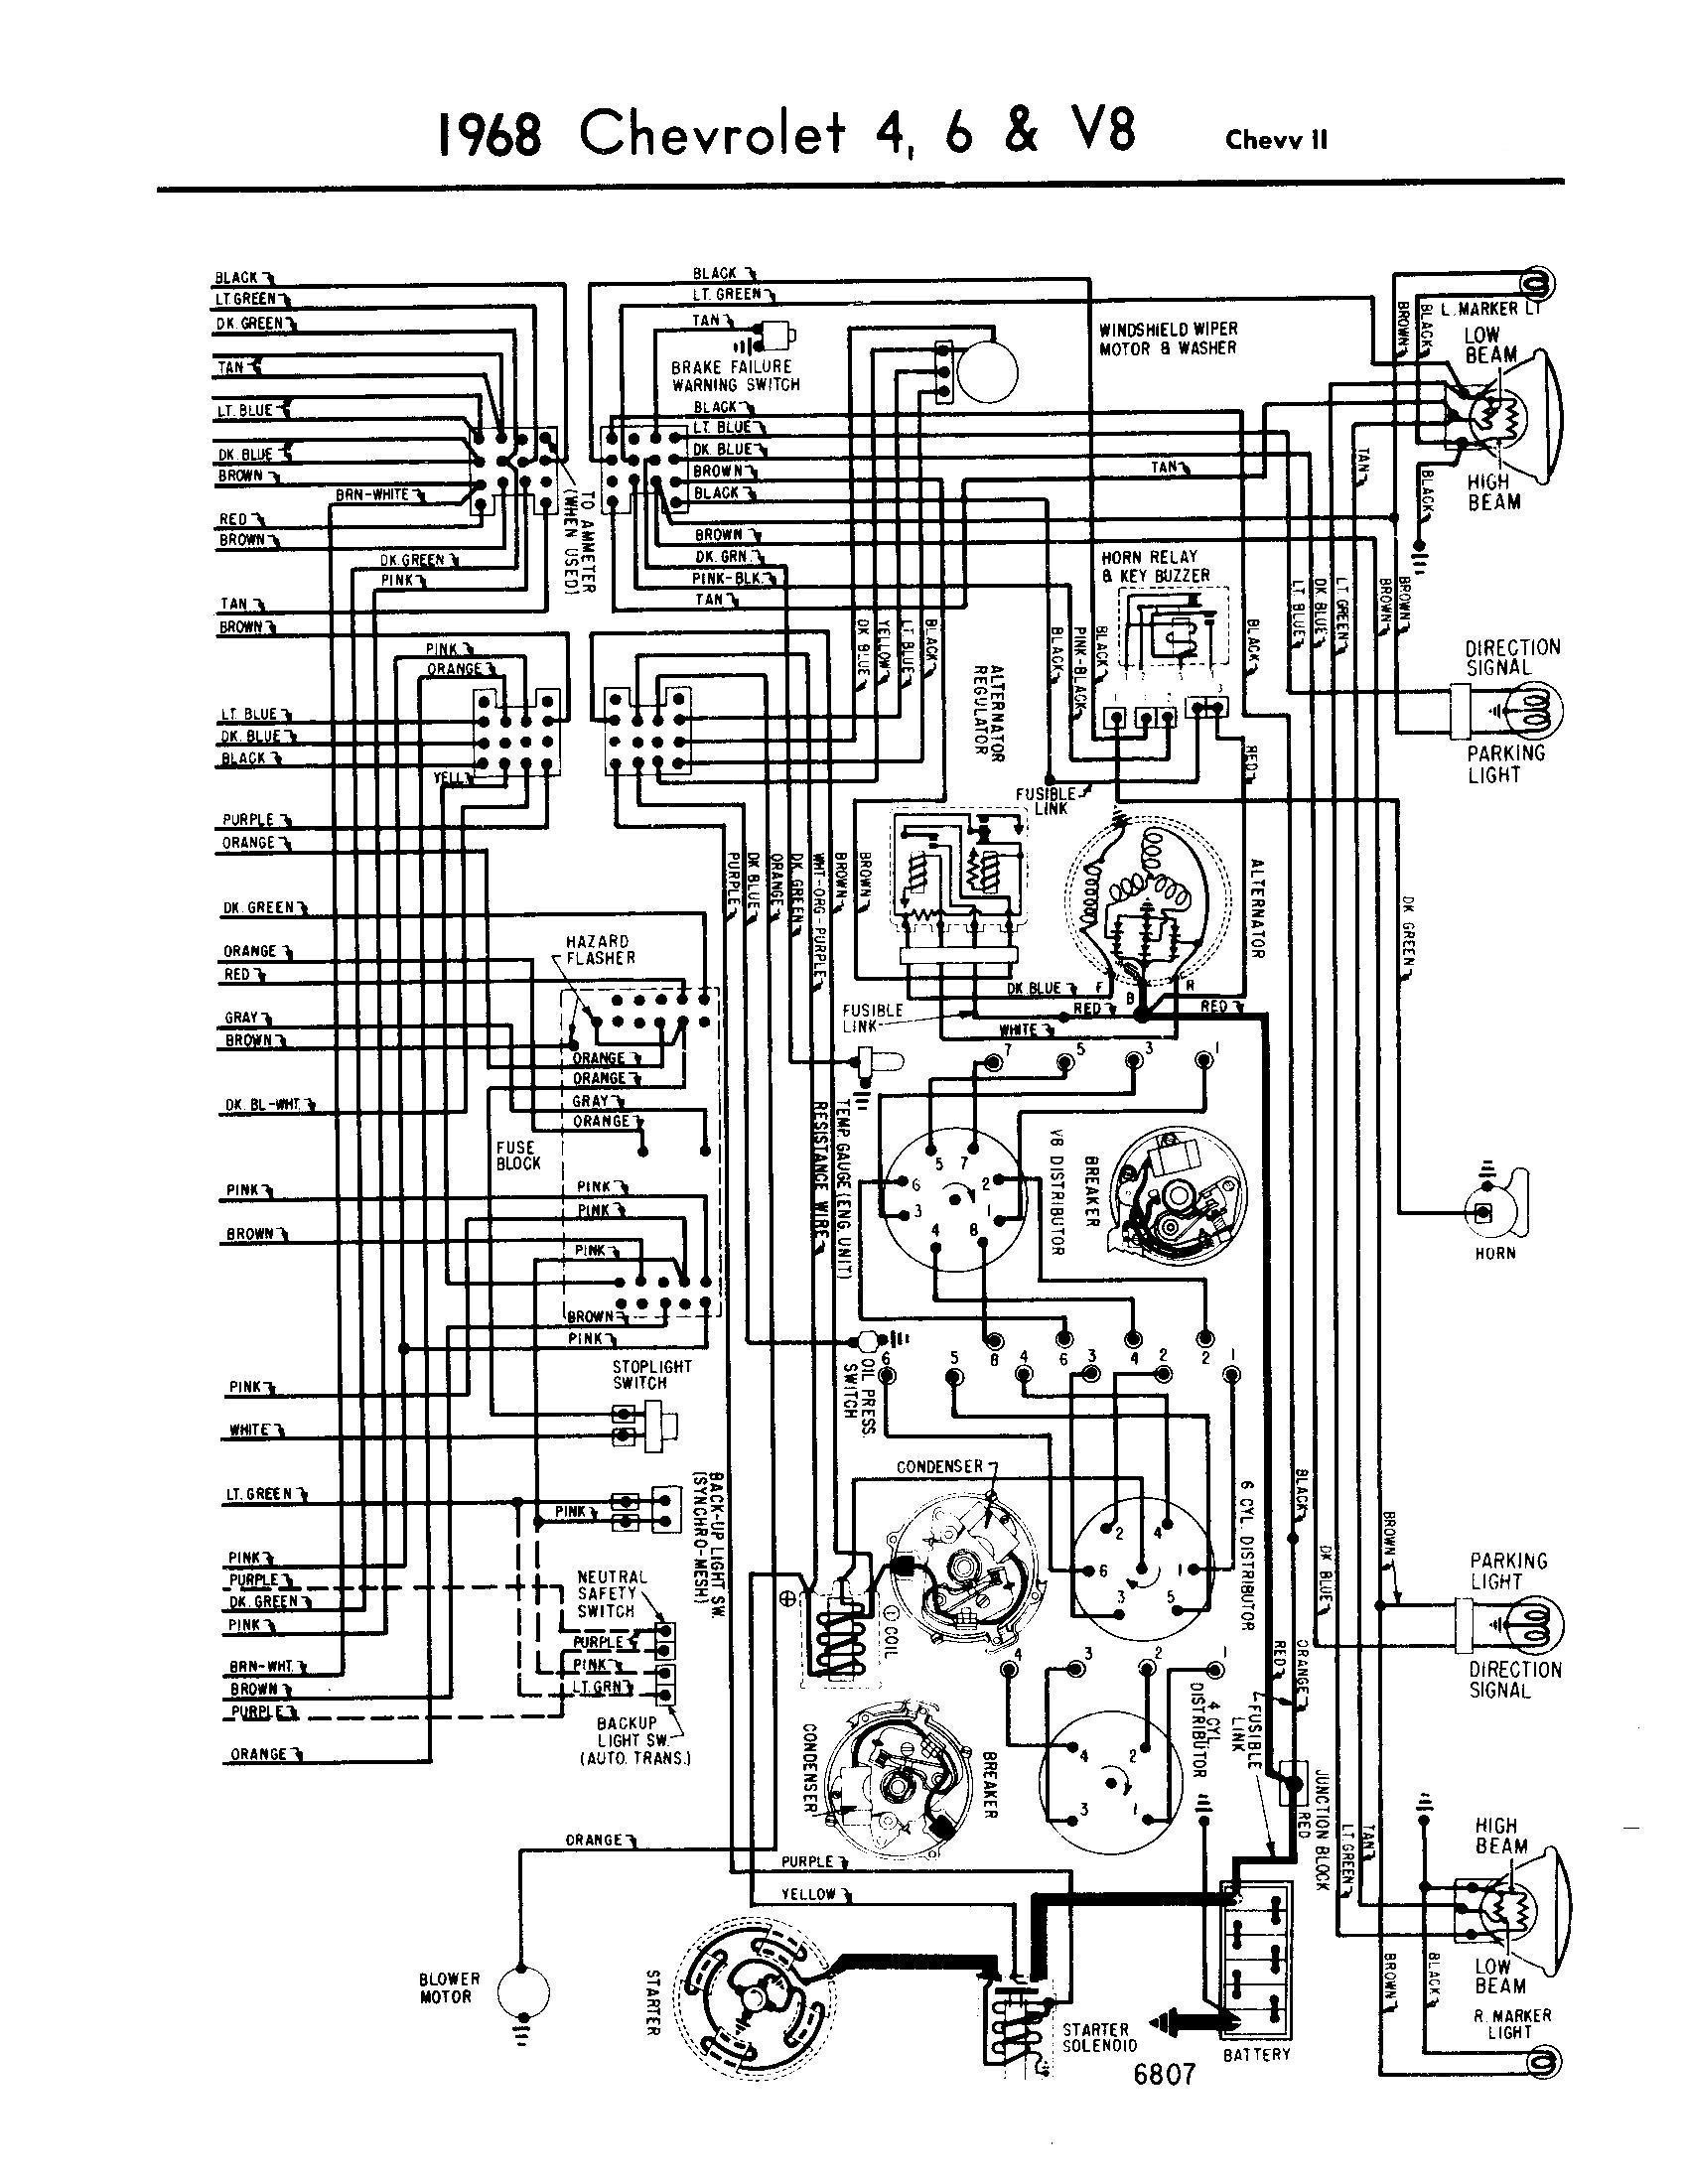 1968 camaro wiring diagram Download-1969 Camaro Console Diagram line Schematic Diagram • 17-h